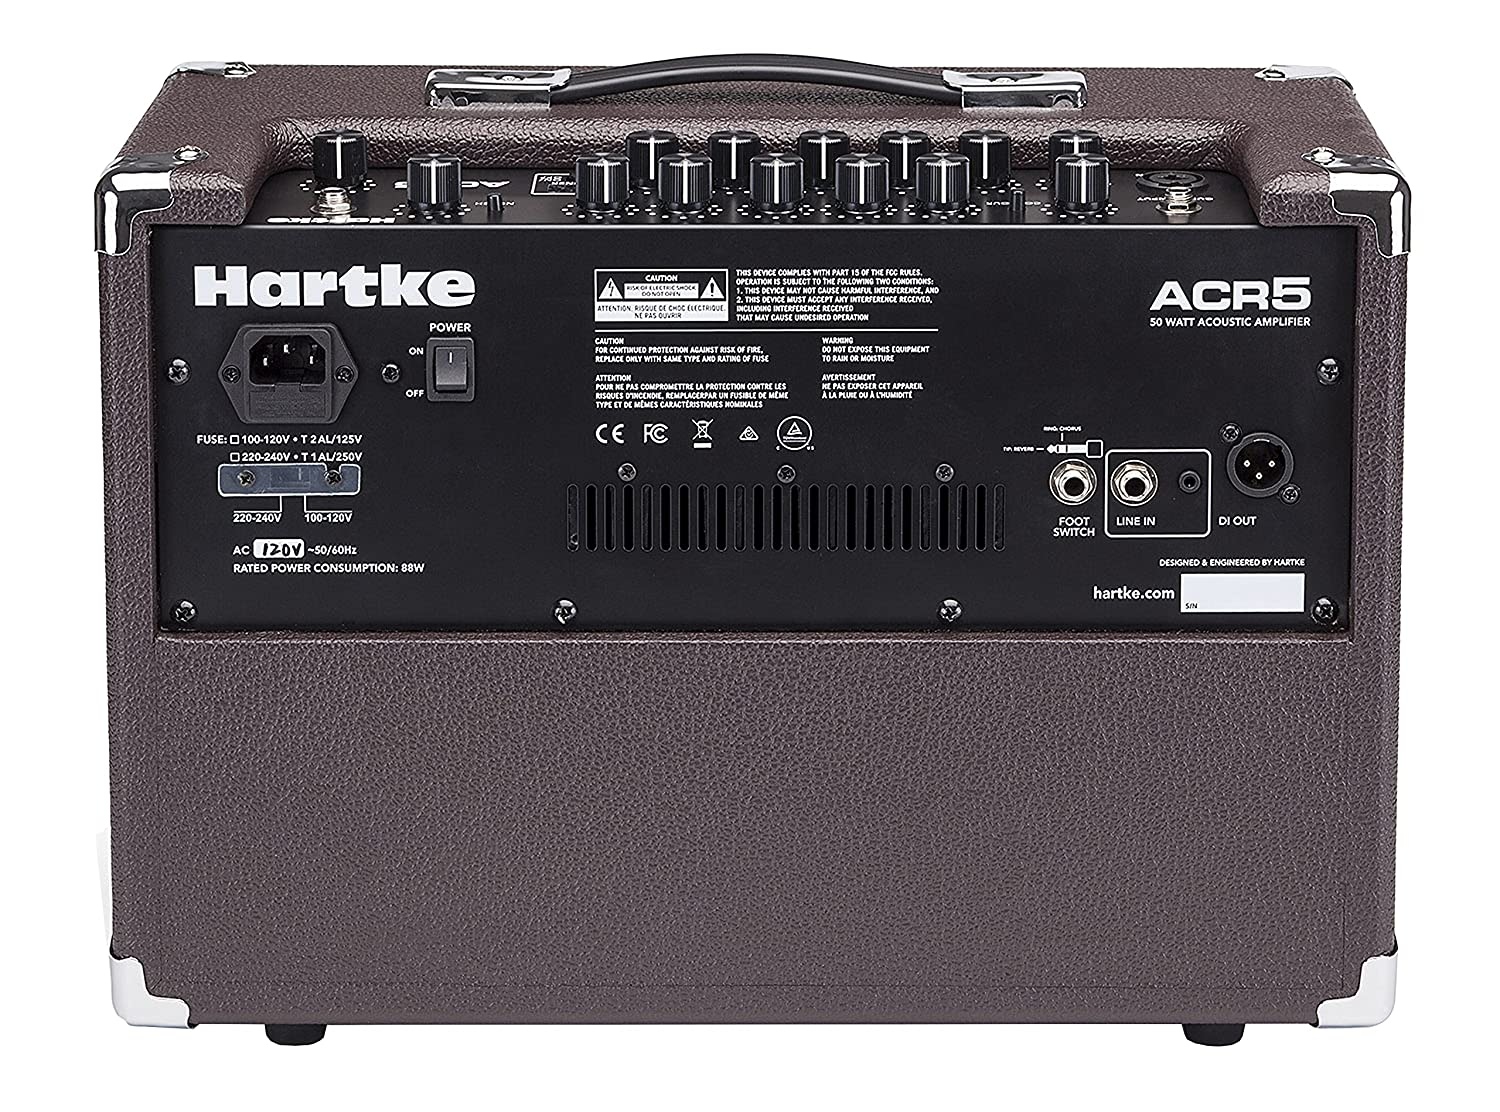 Amazon.com: Hartke ACR5 Acoustic Guitar Amplifier with Chorus and Reverb, 50 Watts: Musical Instruments